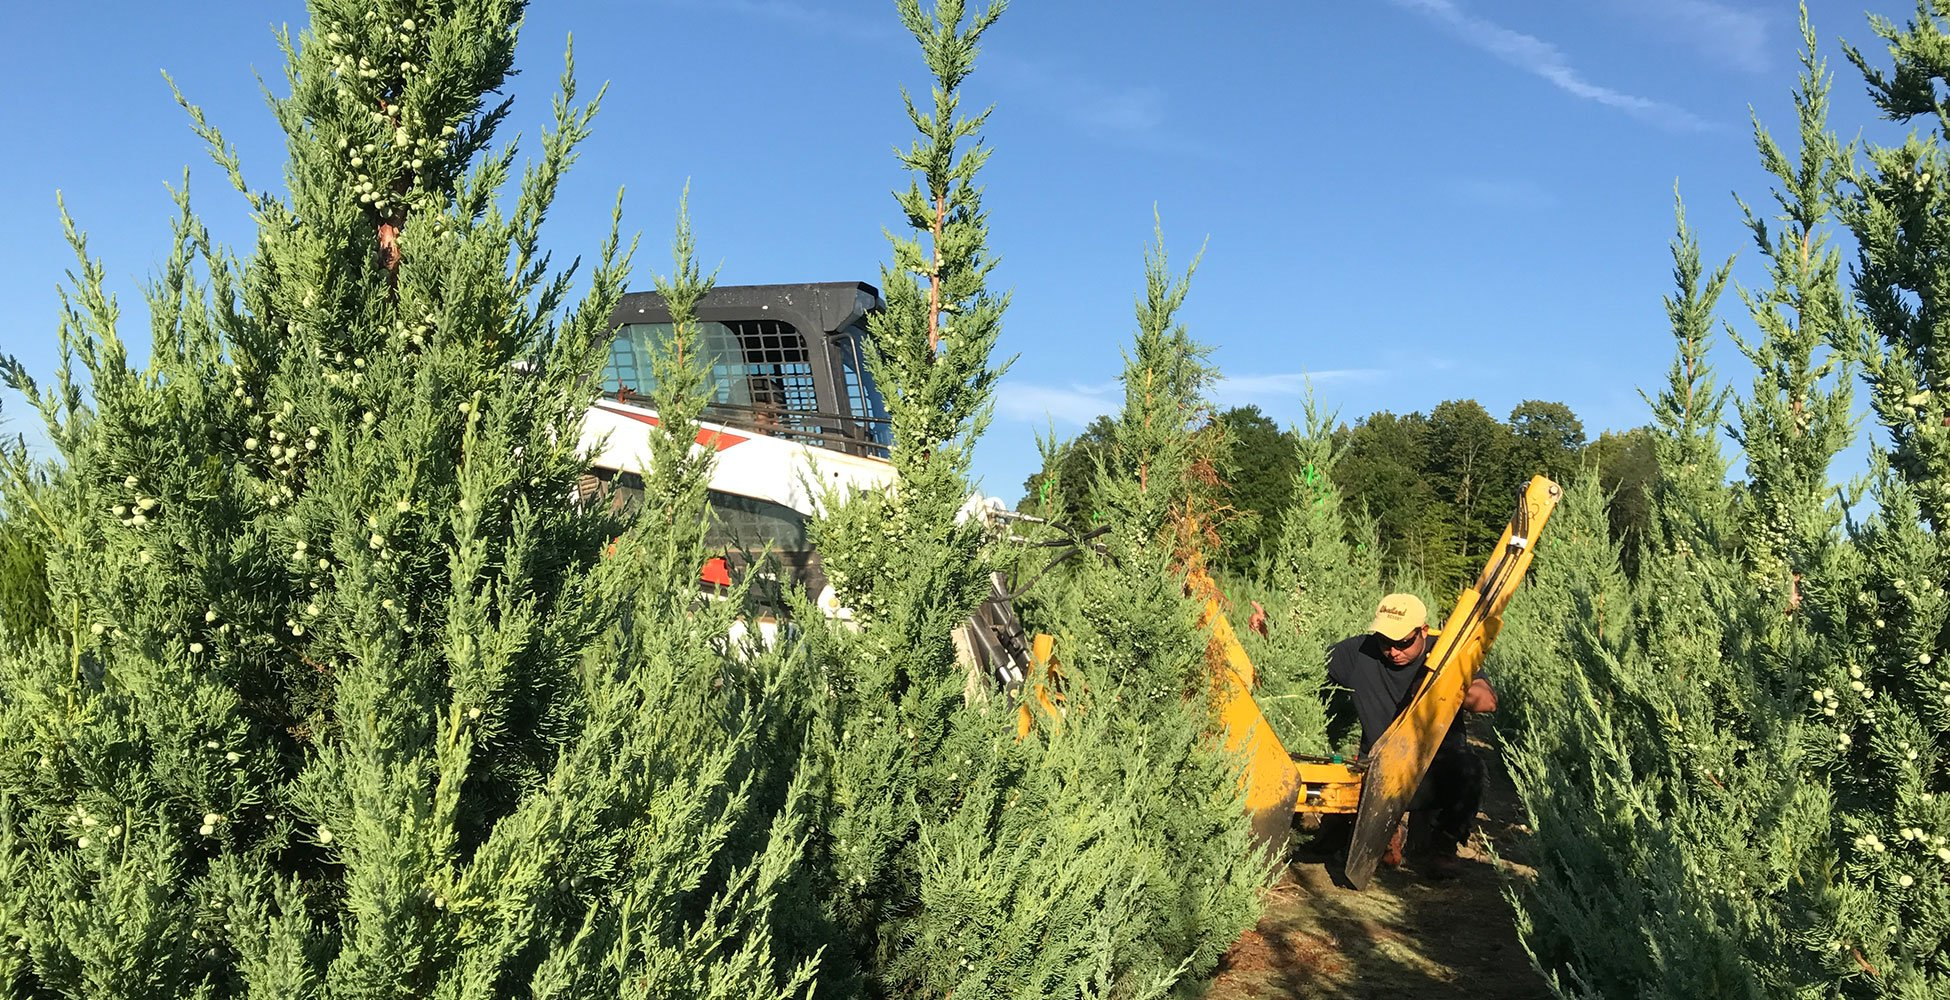 about johnson's nursery plant grower tree farm harvest evergreen juniper